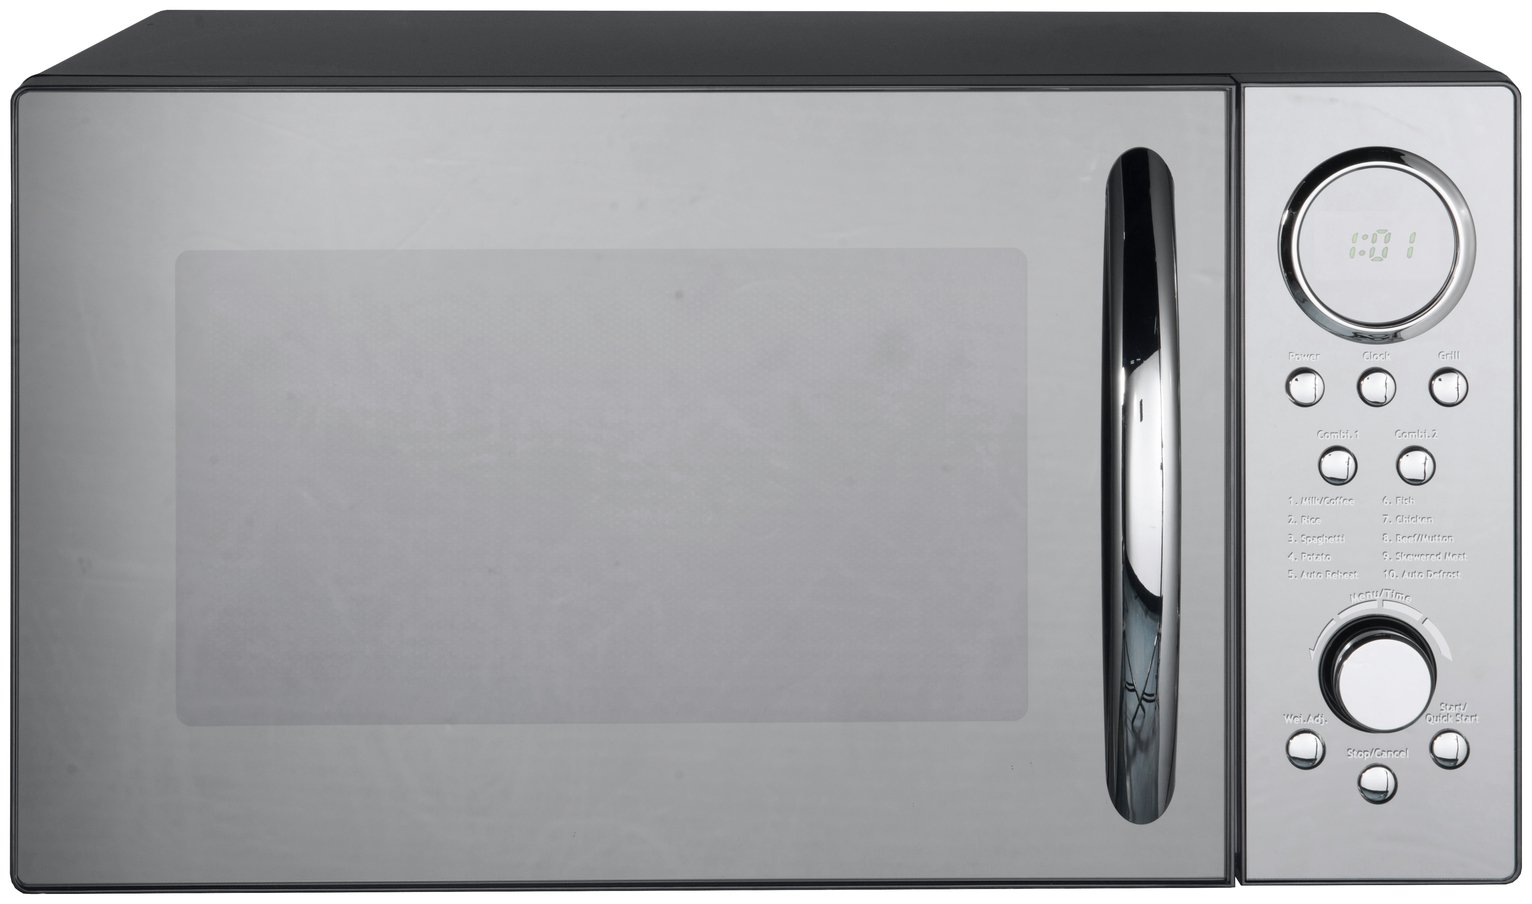 Morphy Richards 900W Microwave with Grill D90D23ELB8 - Black